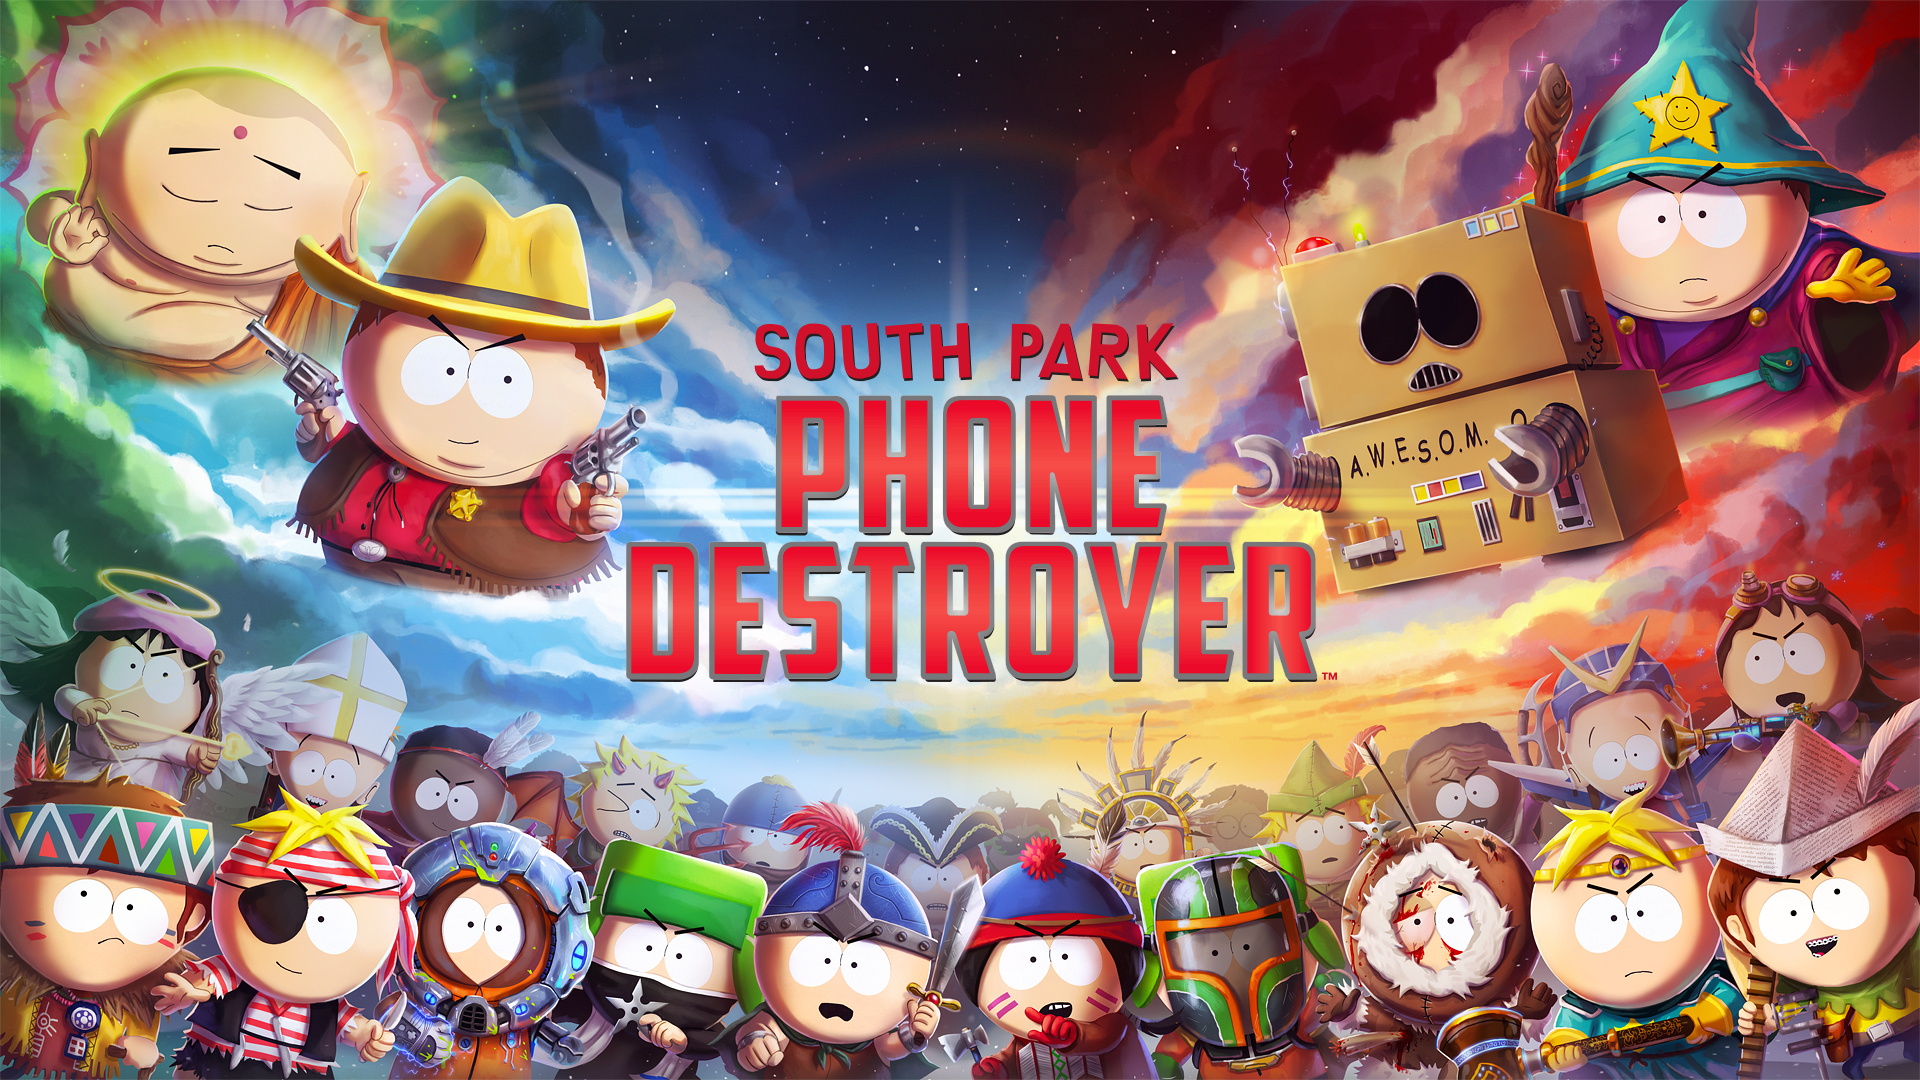 South Park Phone Destroyer: La recensione